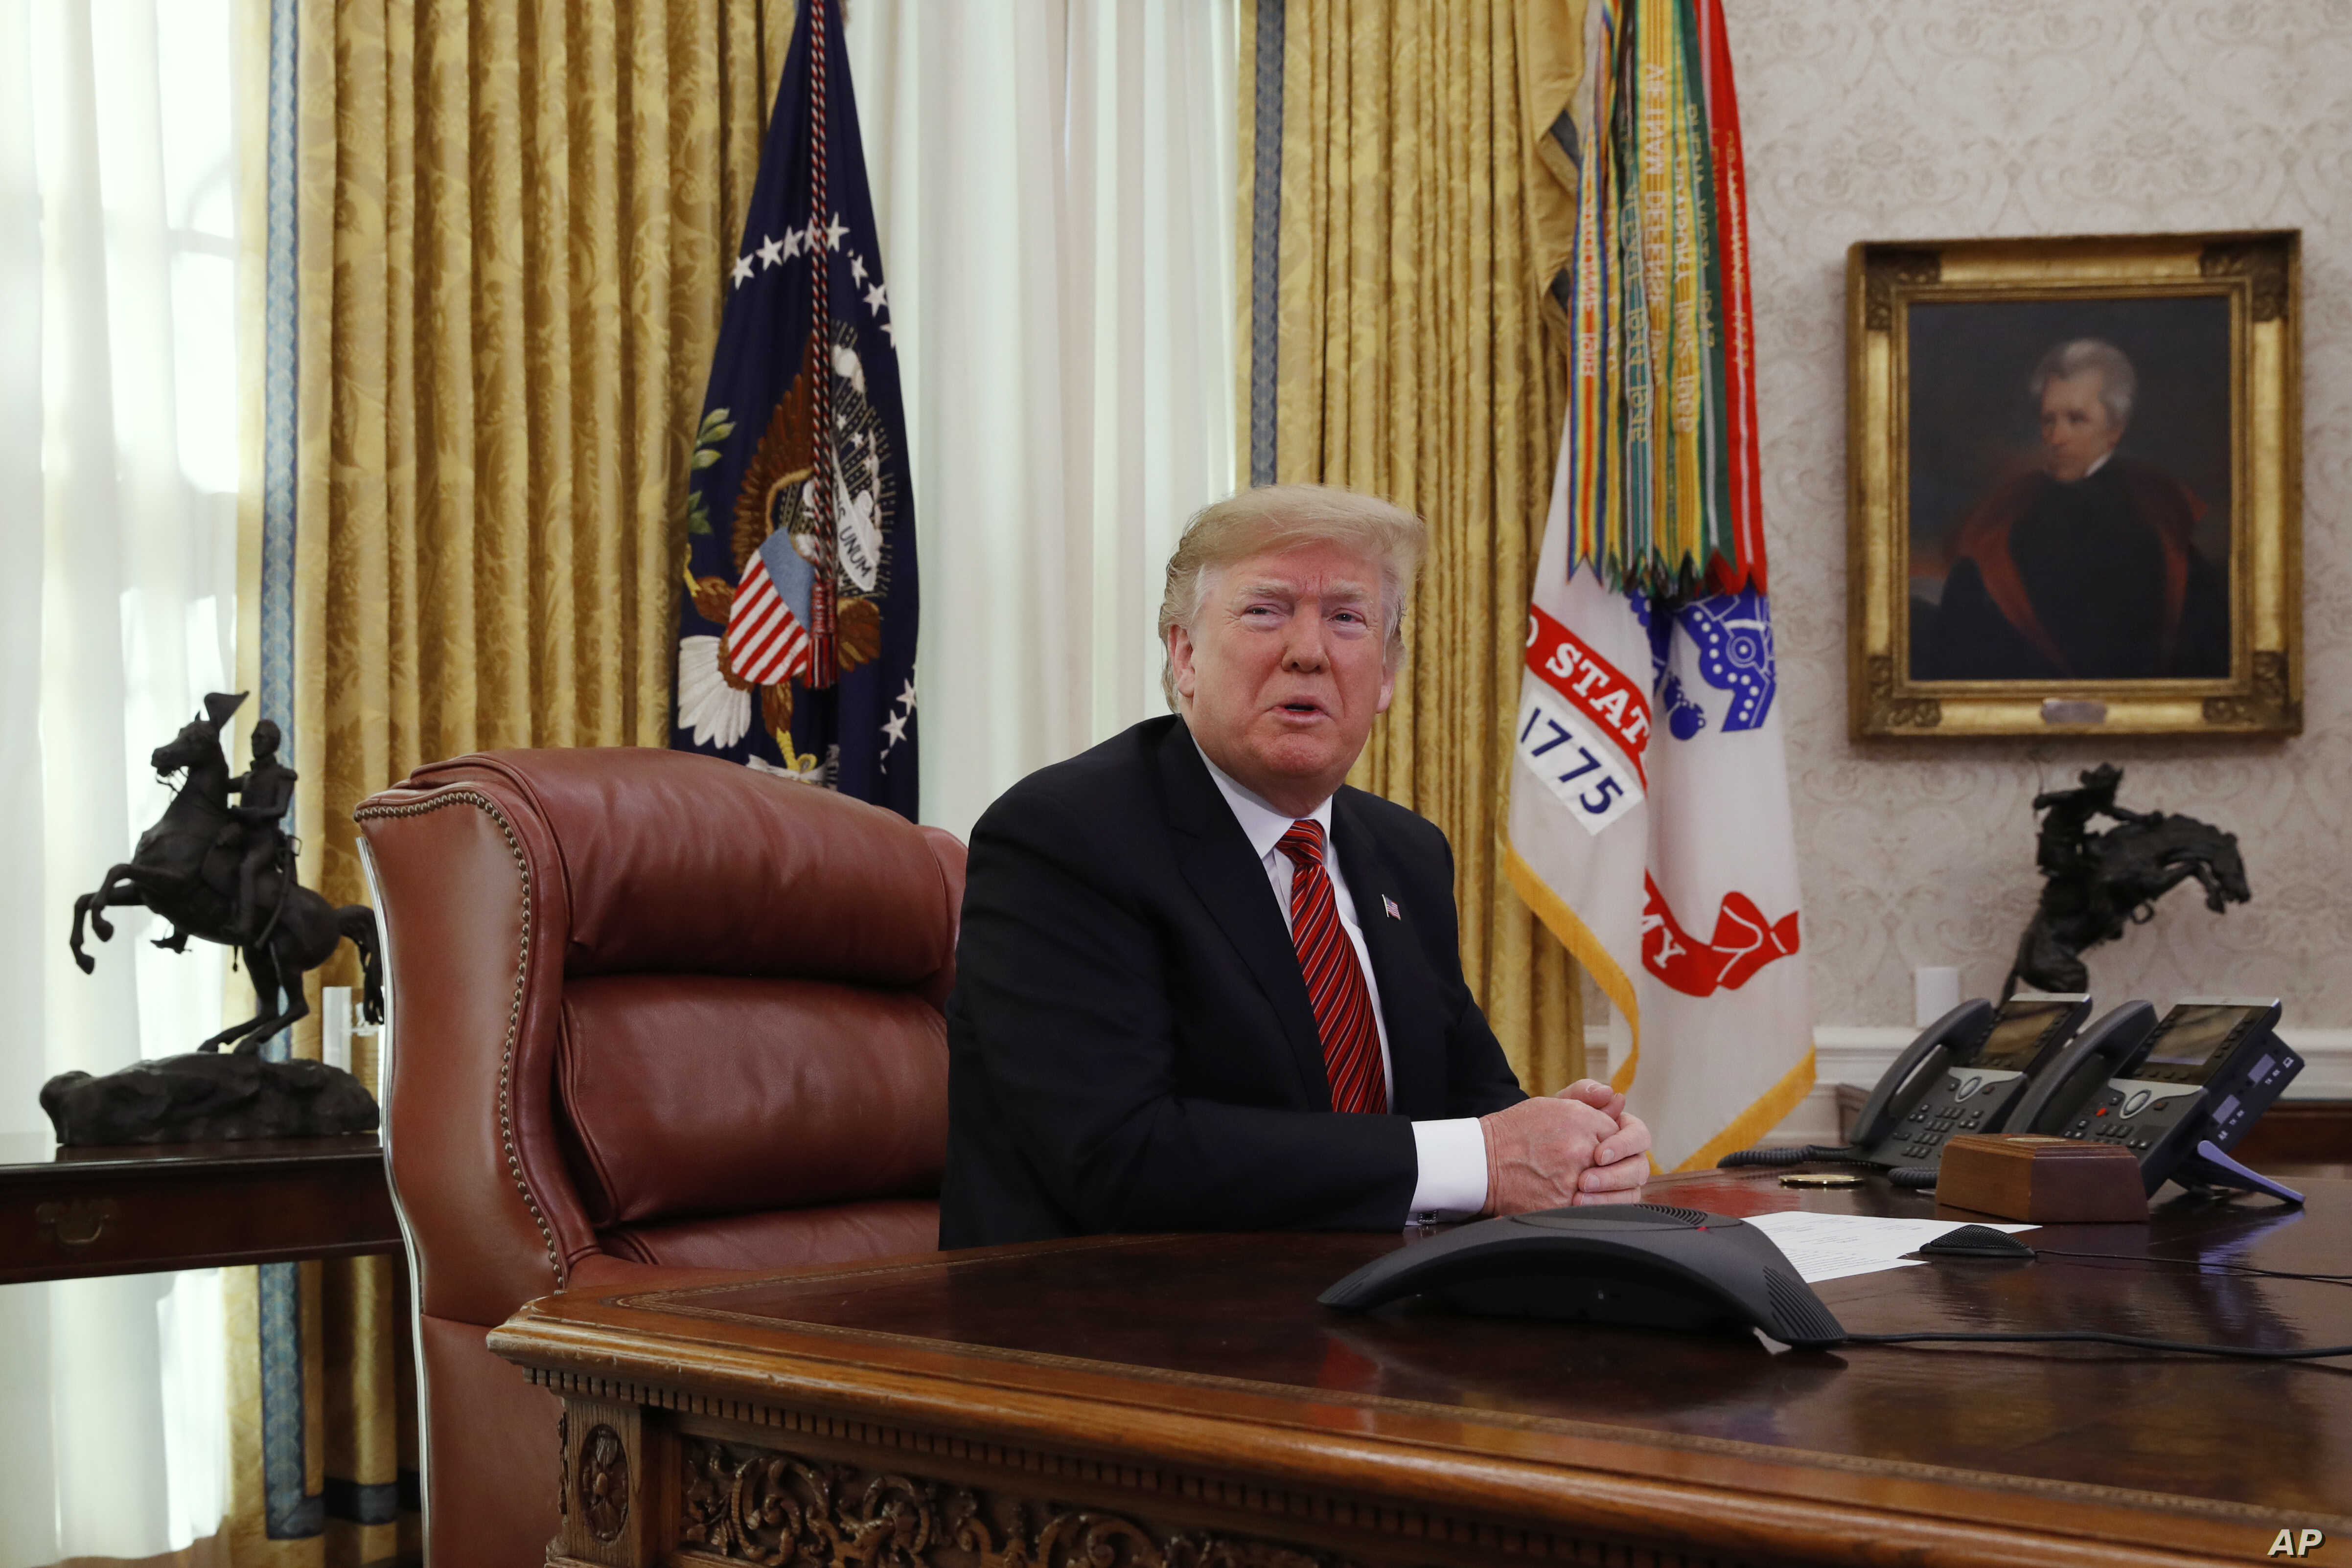 President Donald Trump answers questions from the media after speaking with members of the military by video conference on Christmas Day, Dec. 25, 2018, in the Oval Office of the White House.